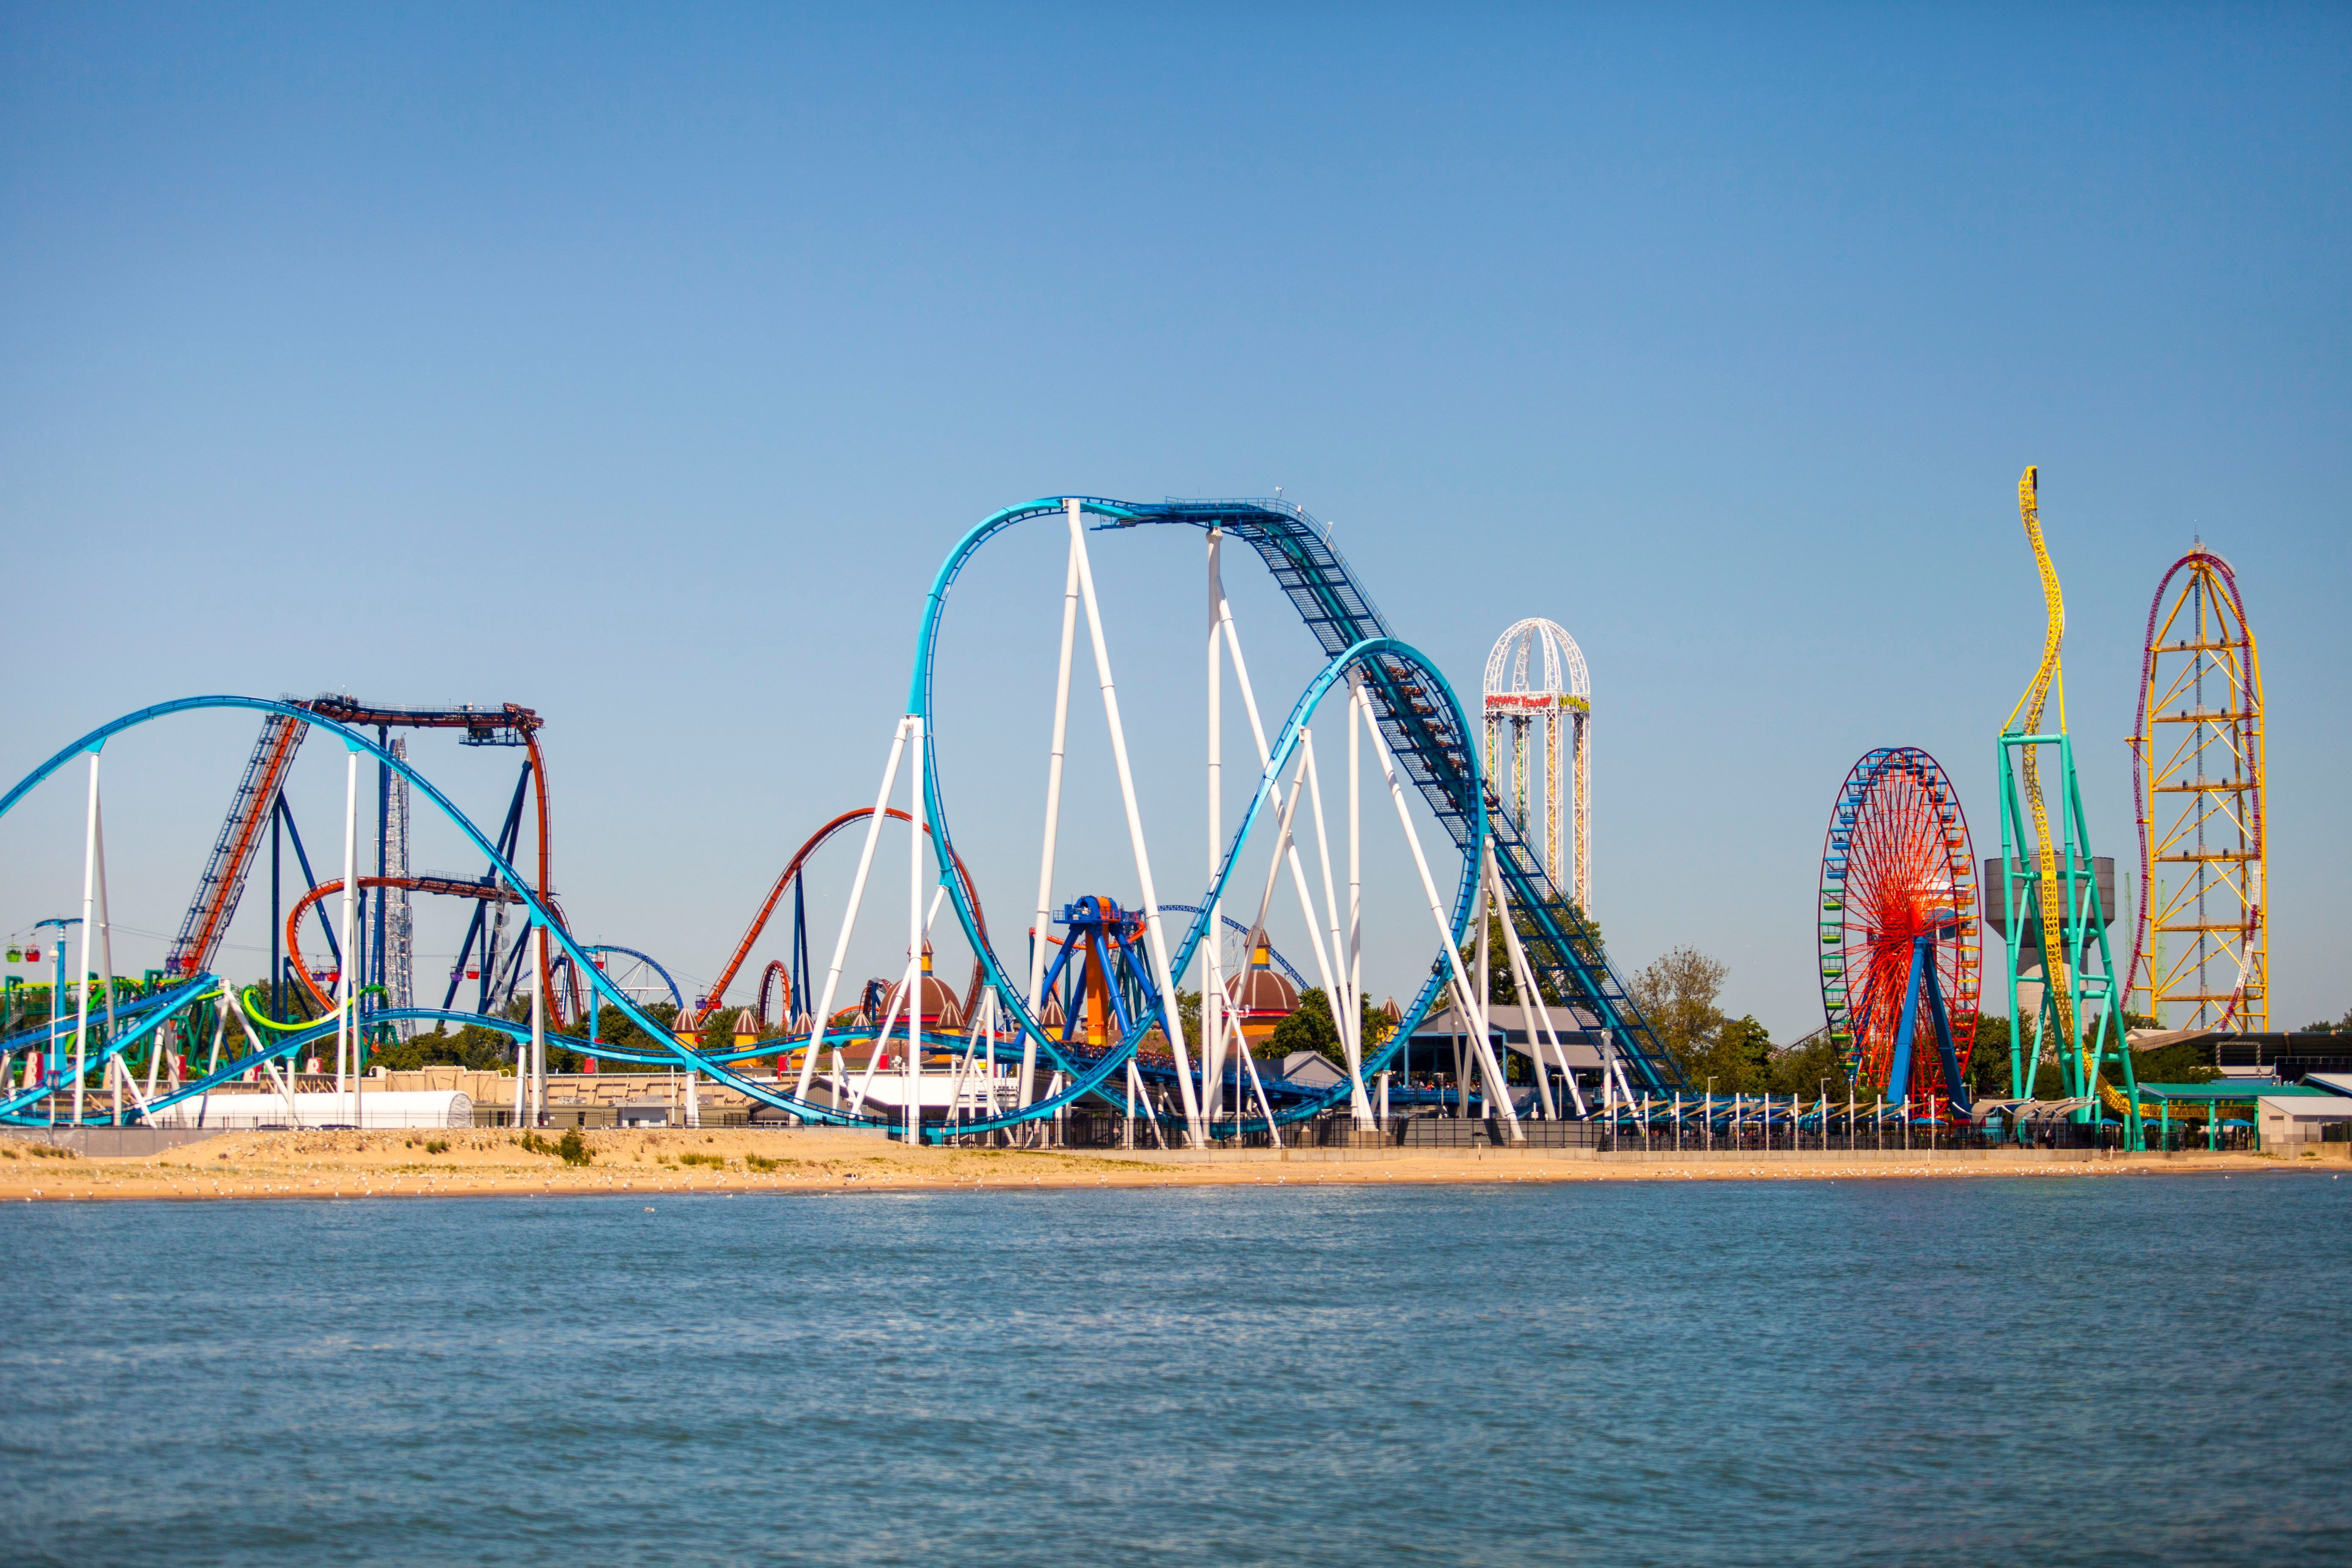 Four people appear to have overdosed at Ohio's Cedar Point amusement park July 16, 2019.